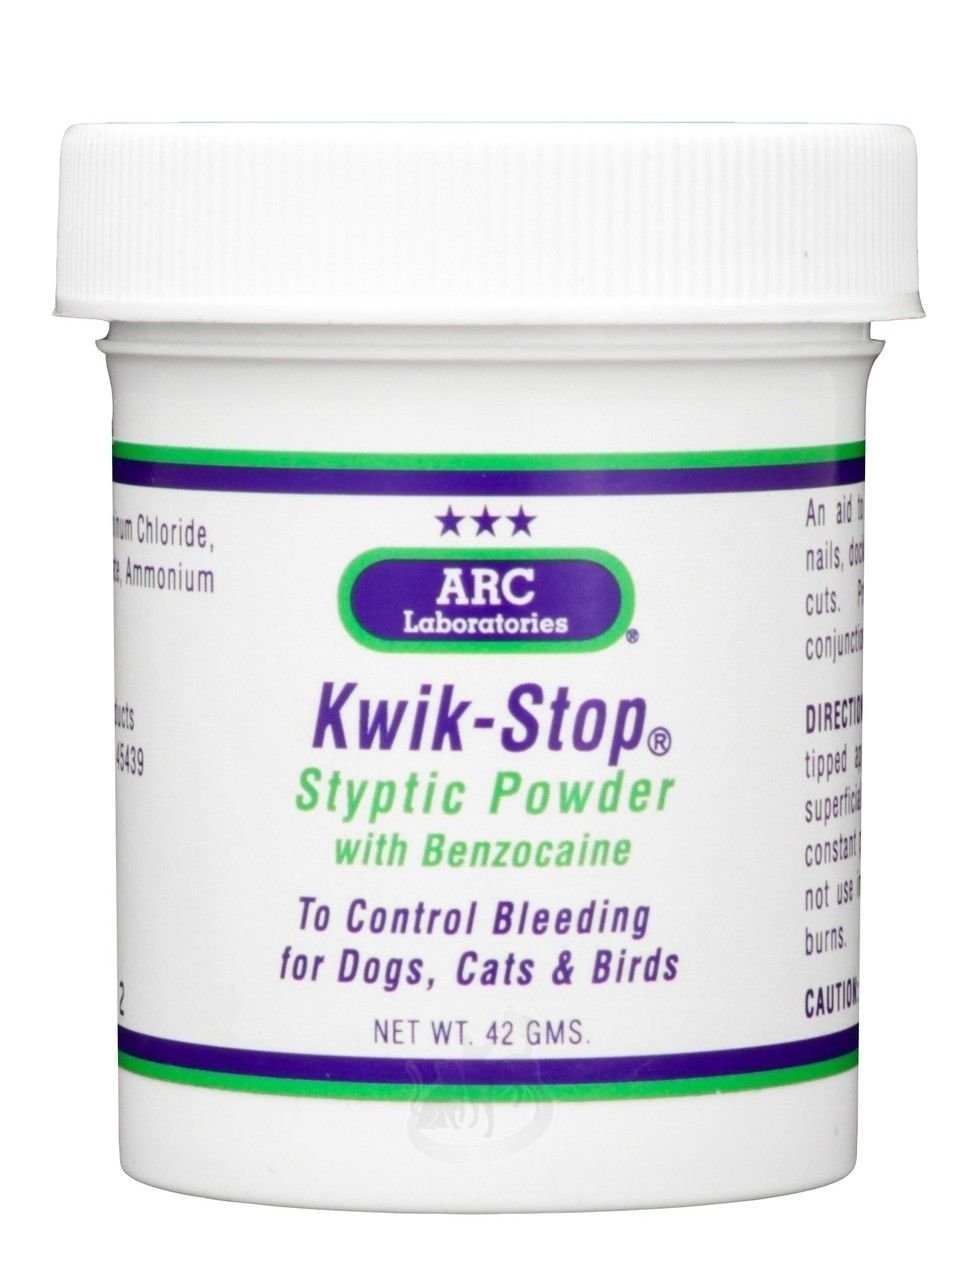 Gimborn Kwik Stop Styptic Powder (42 g) Benzocaine Bleed Stop for Pets by Gimborn